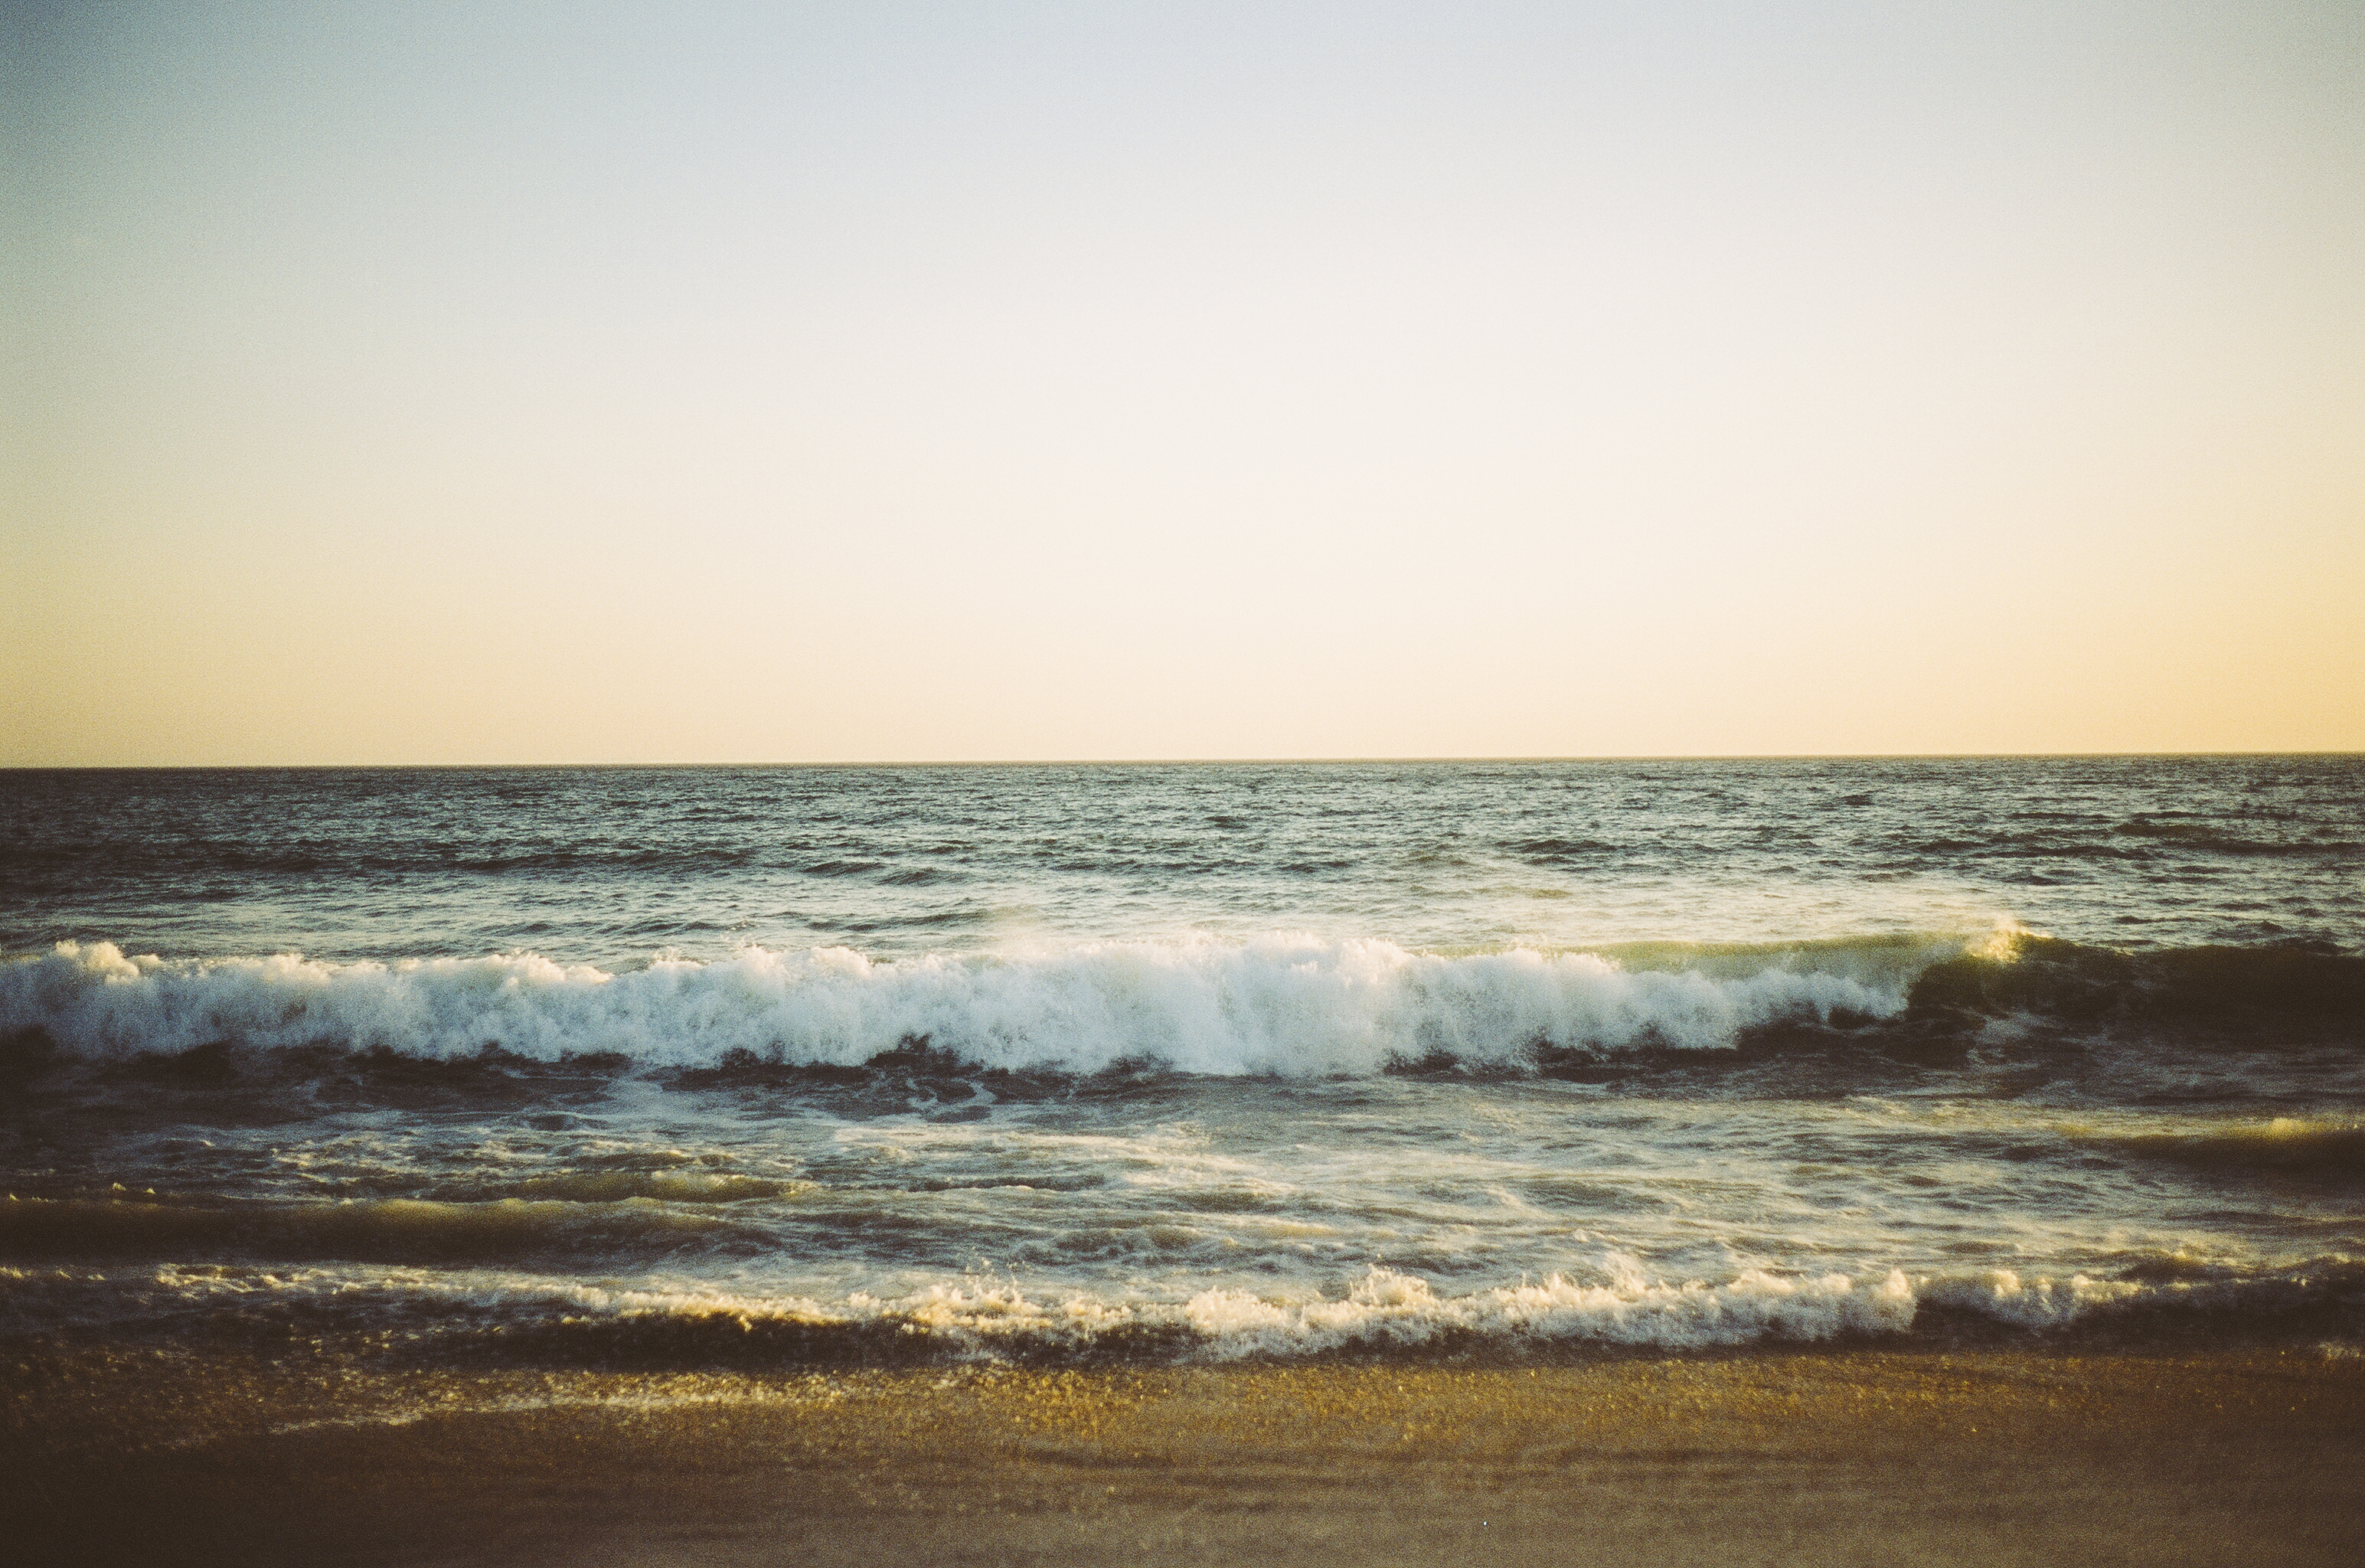 sea-beach-ocean-waves